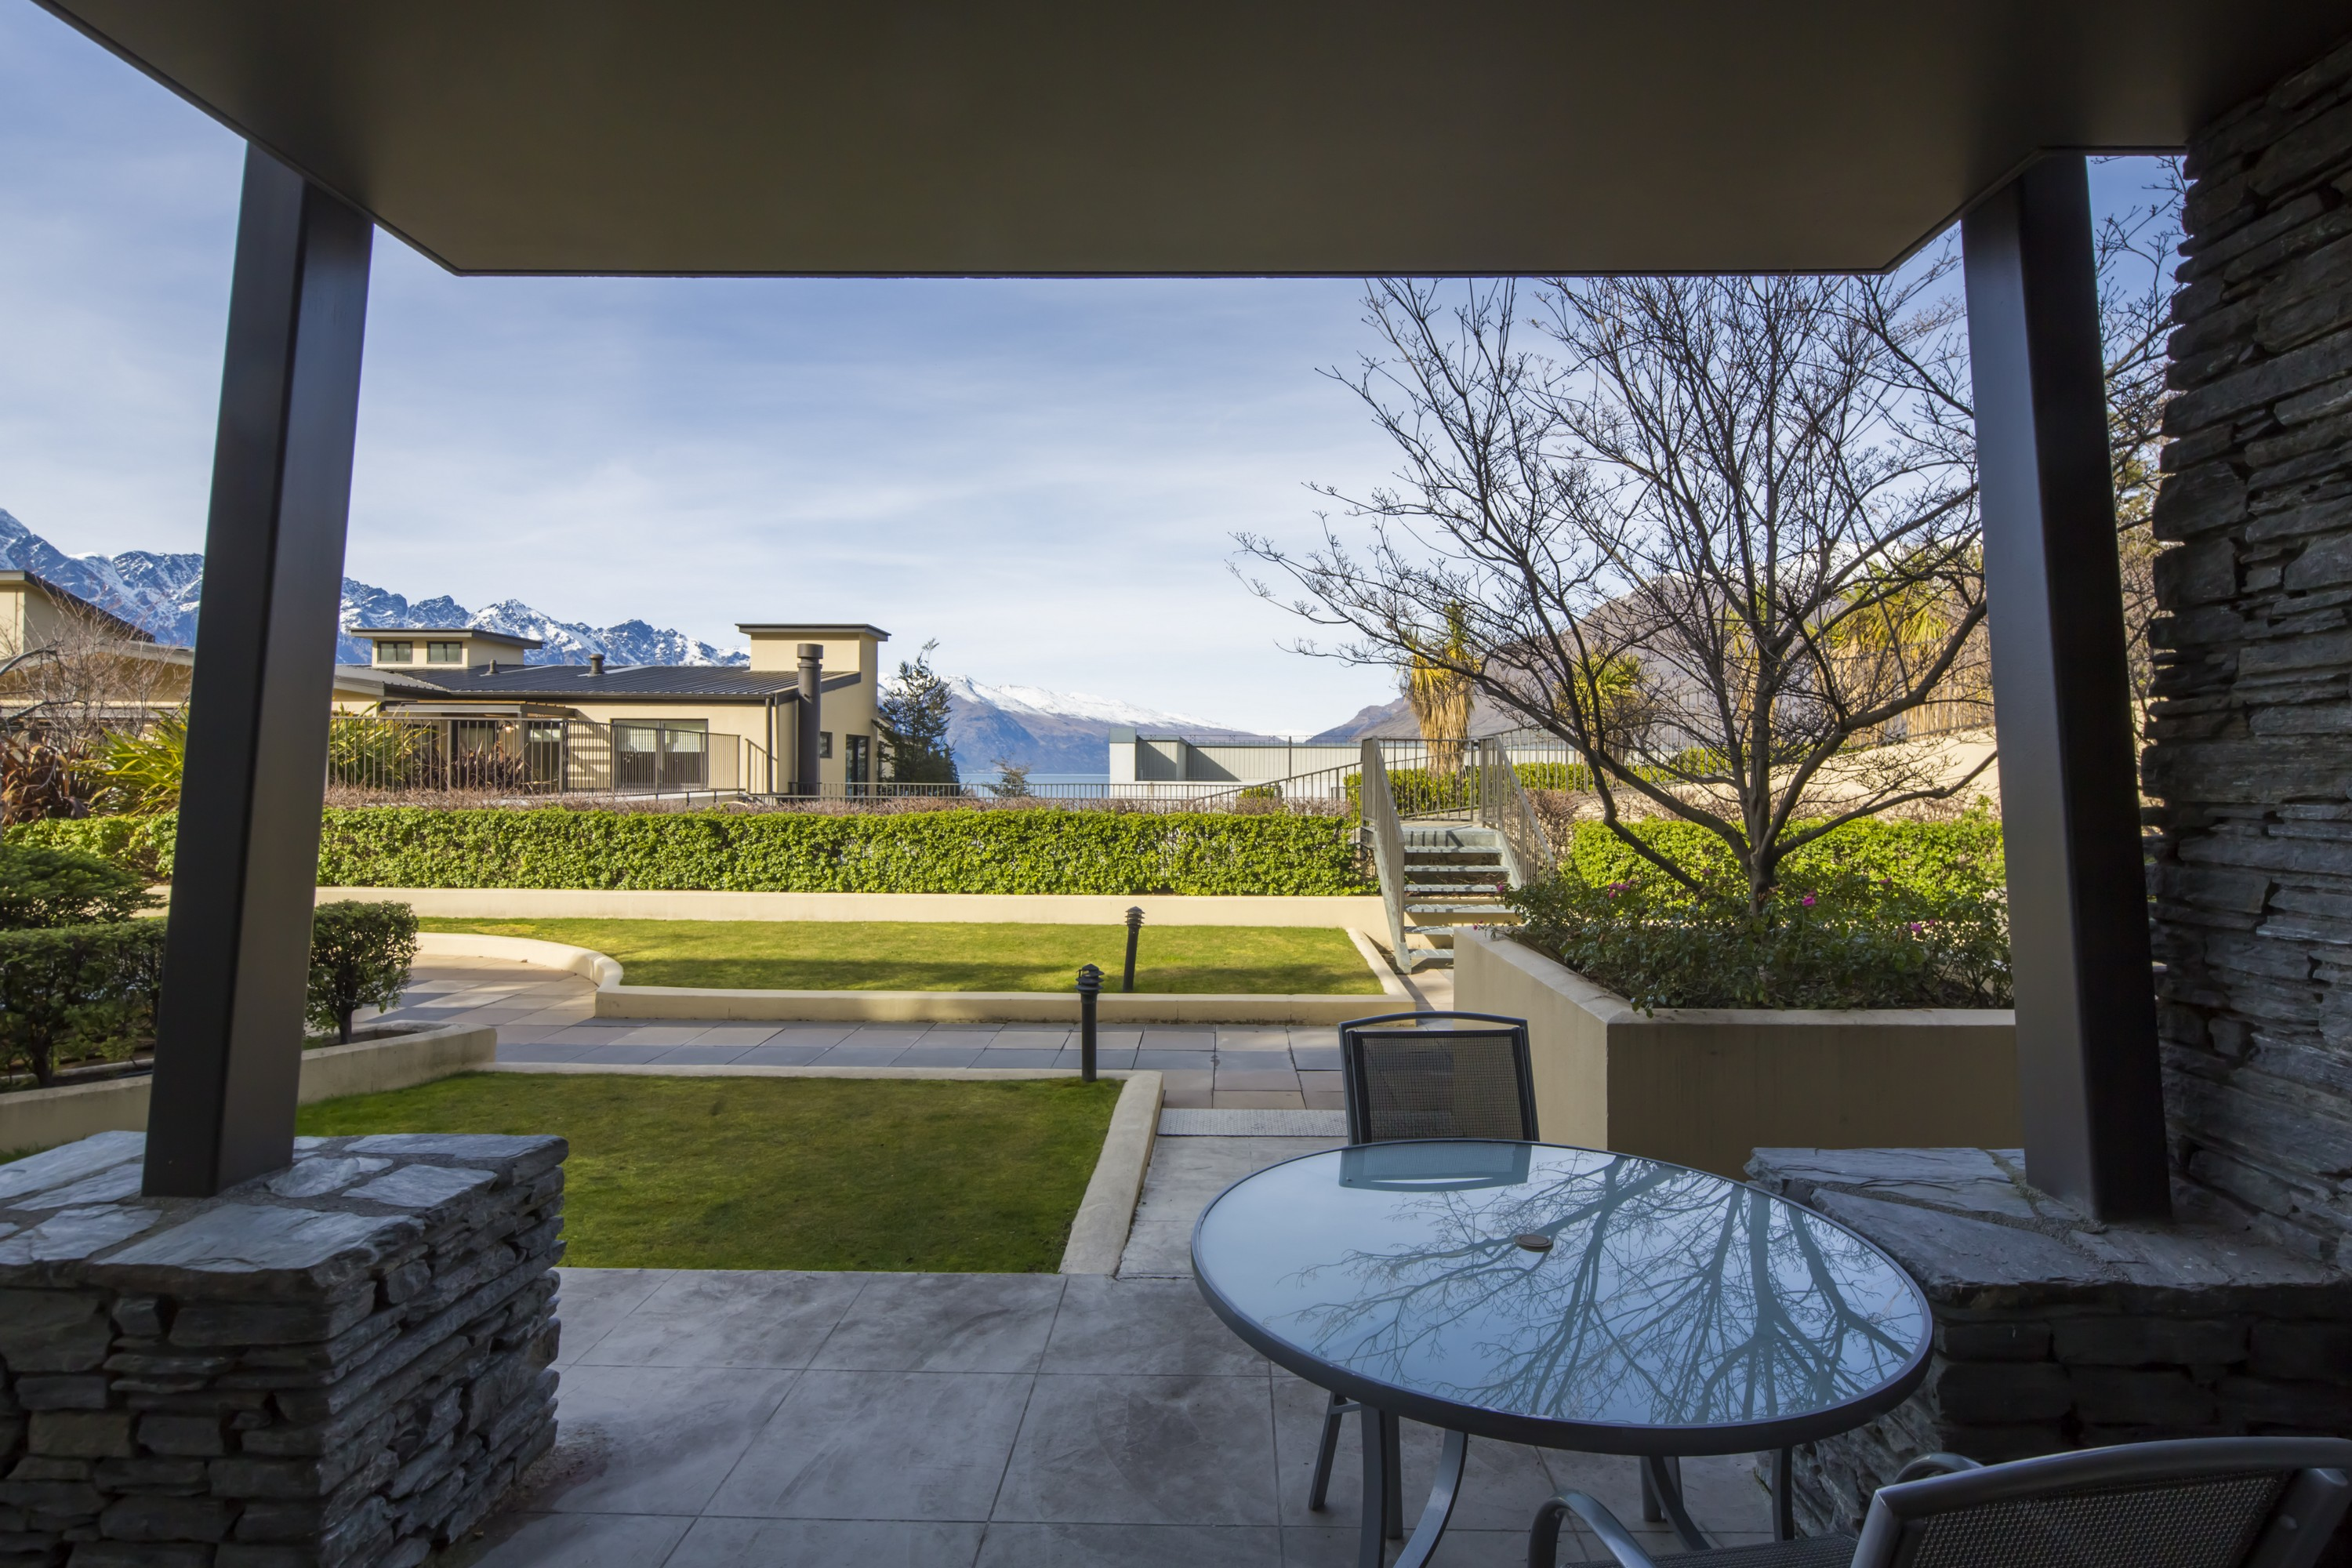 Apartment for Sale at Peppers Beacon Apartment 622 Peppers Beacon Queenstown, Otago, 9300 New Zealand